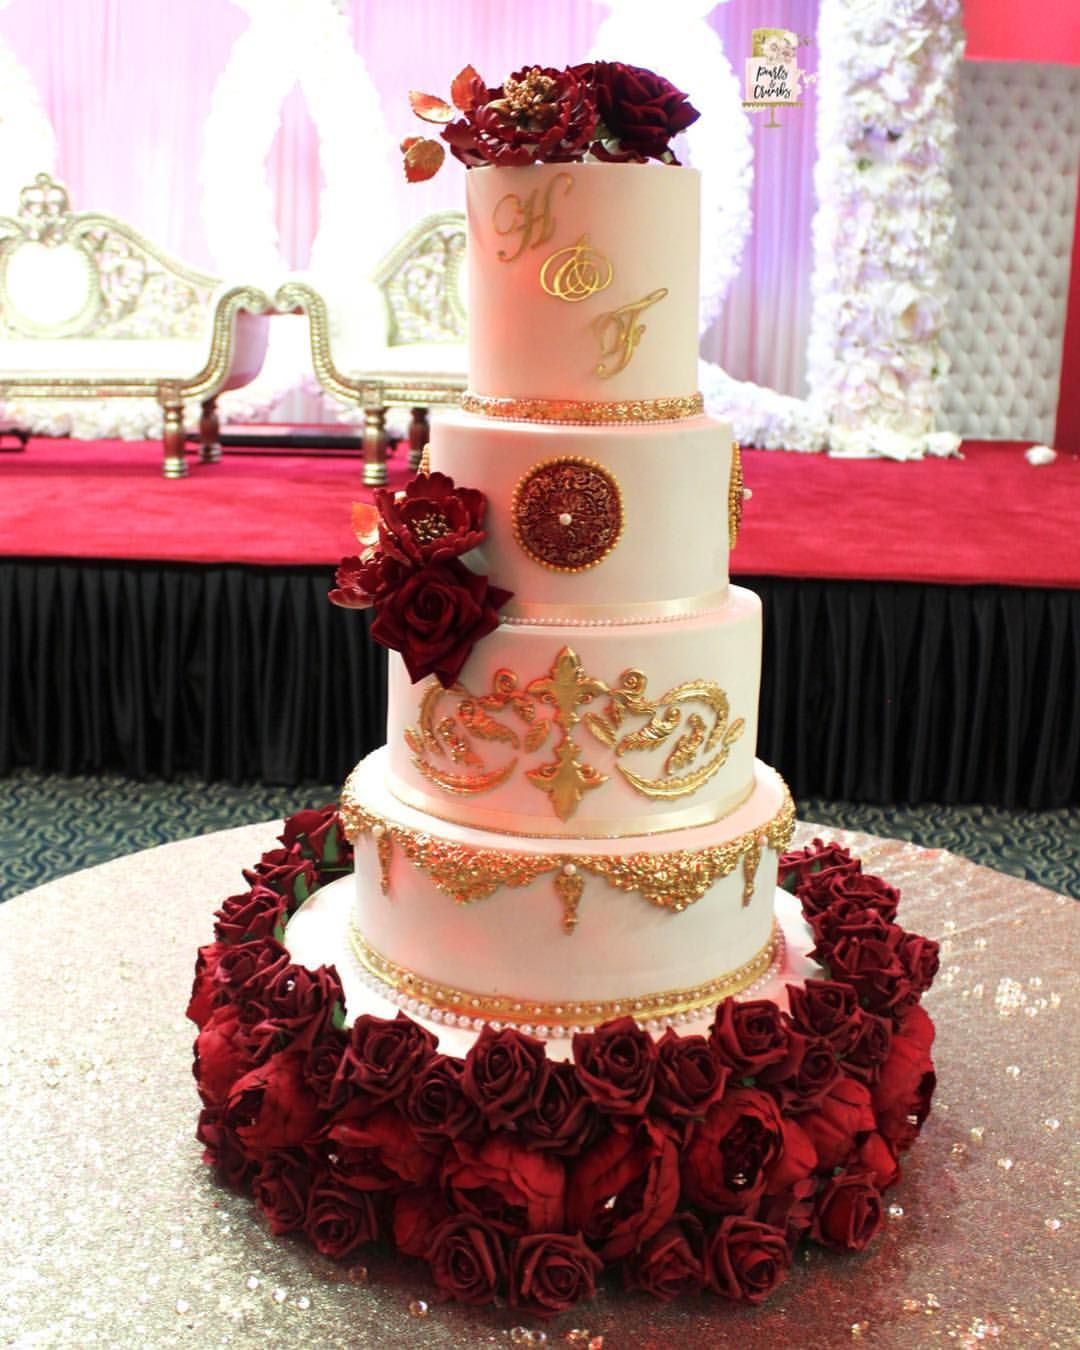 4 Tier Wedding Cake Requested In Heavy Gold Mould Work And